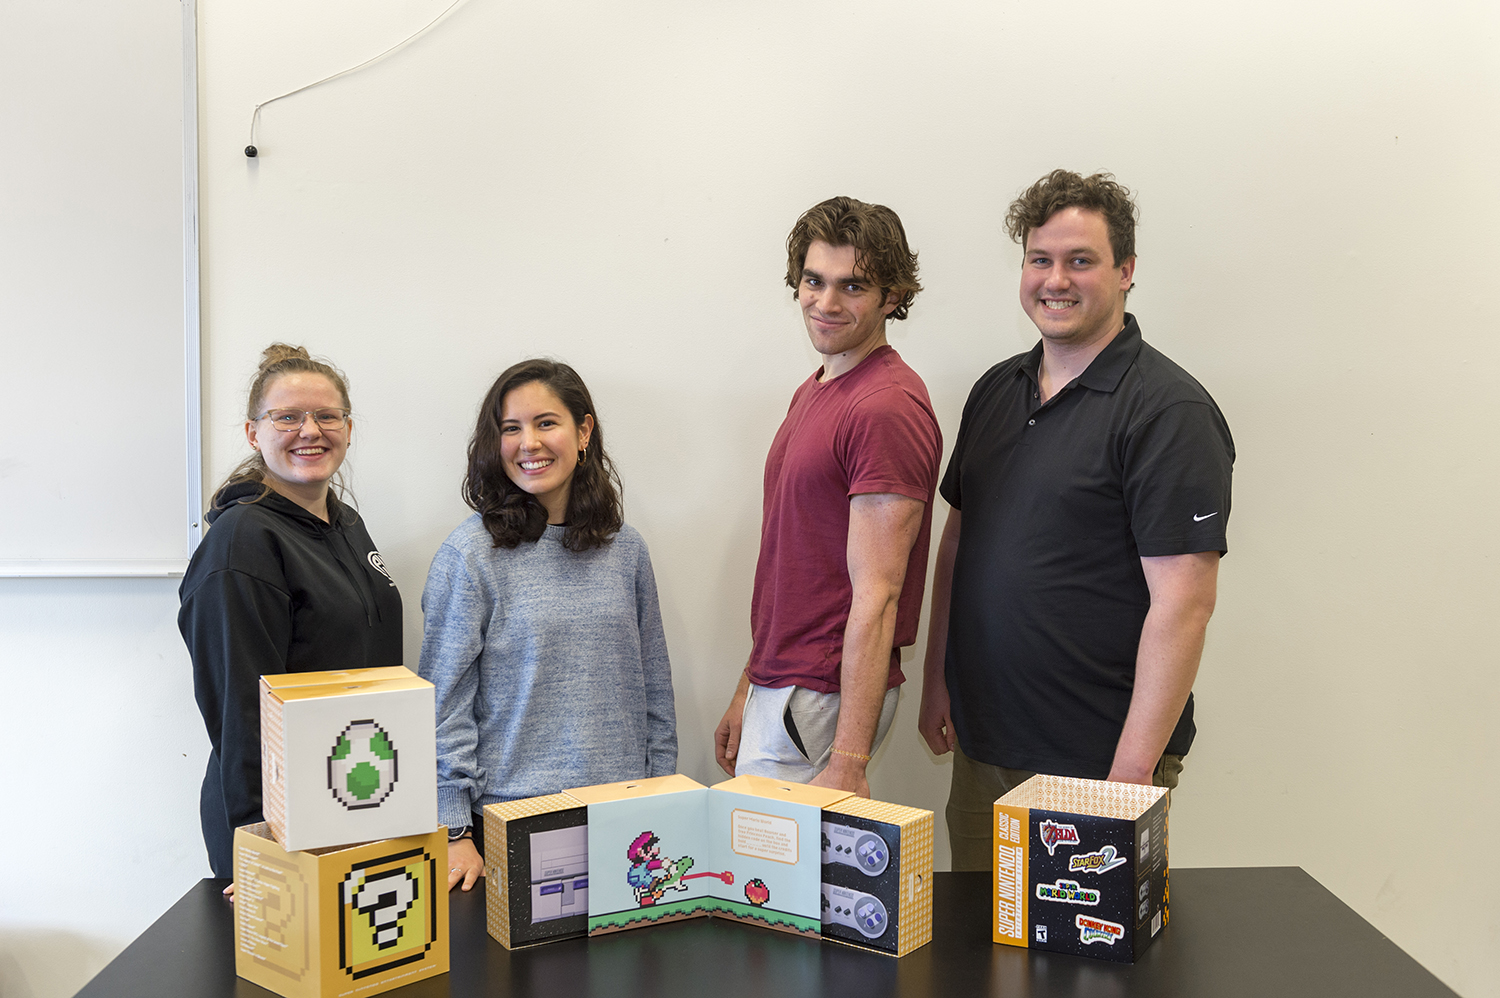 Team Tanooki poses with their packaging design